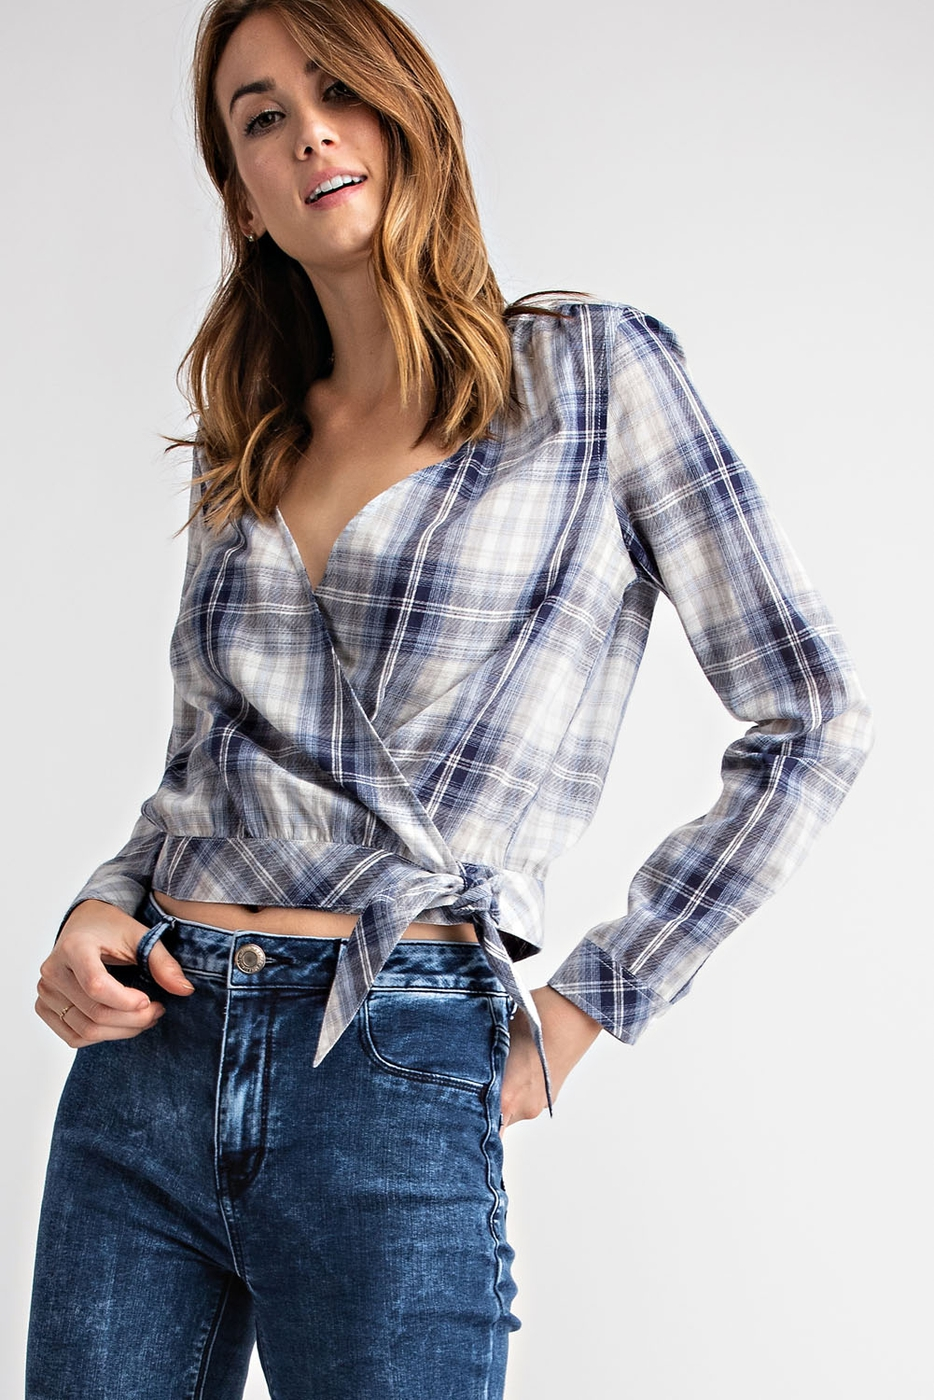 SIDE TIE PLAID LONG SLEEVE WRAP TOP - orangeshine.com